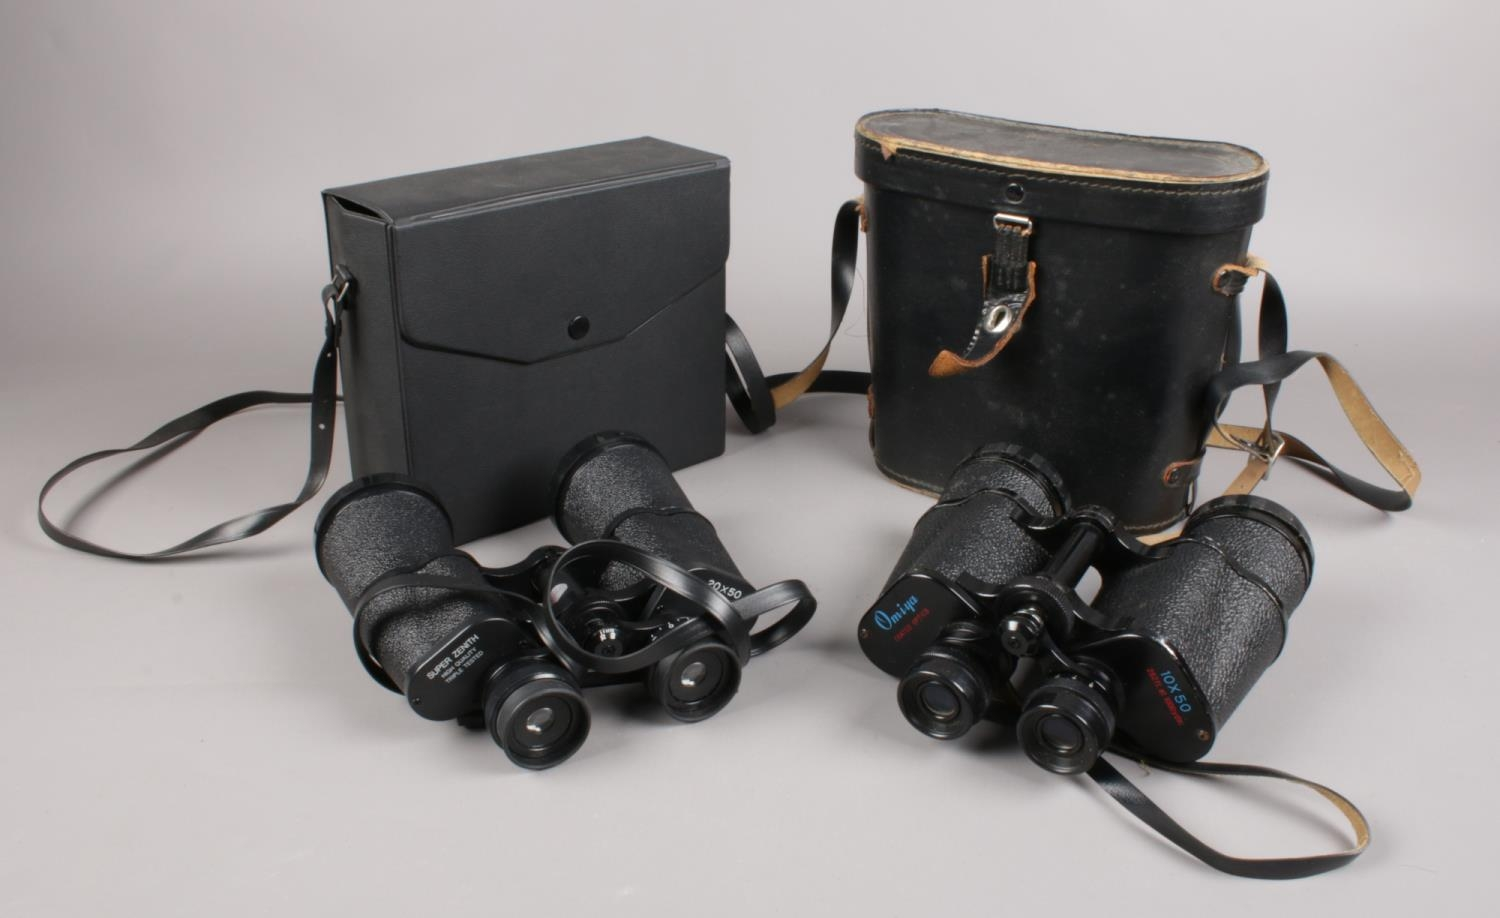 Two cased pairs of binoculars. Includes Super Zenit 20x50 and Omiya 10x50. Interior optics of